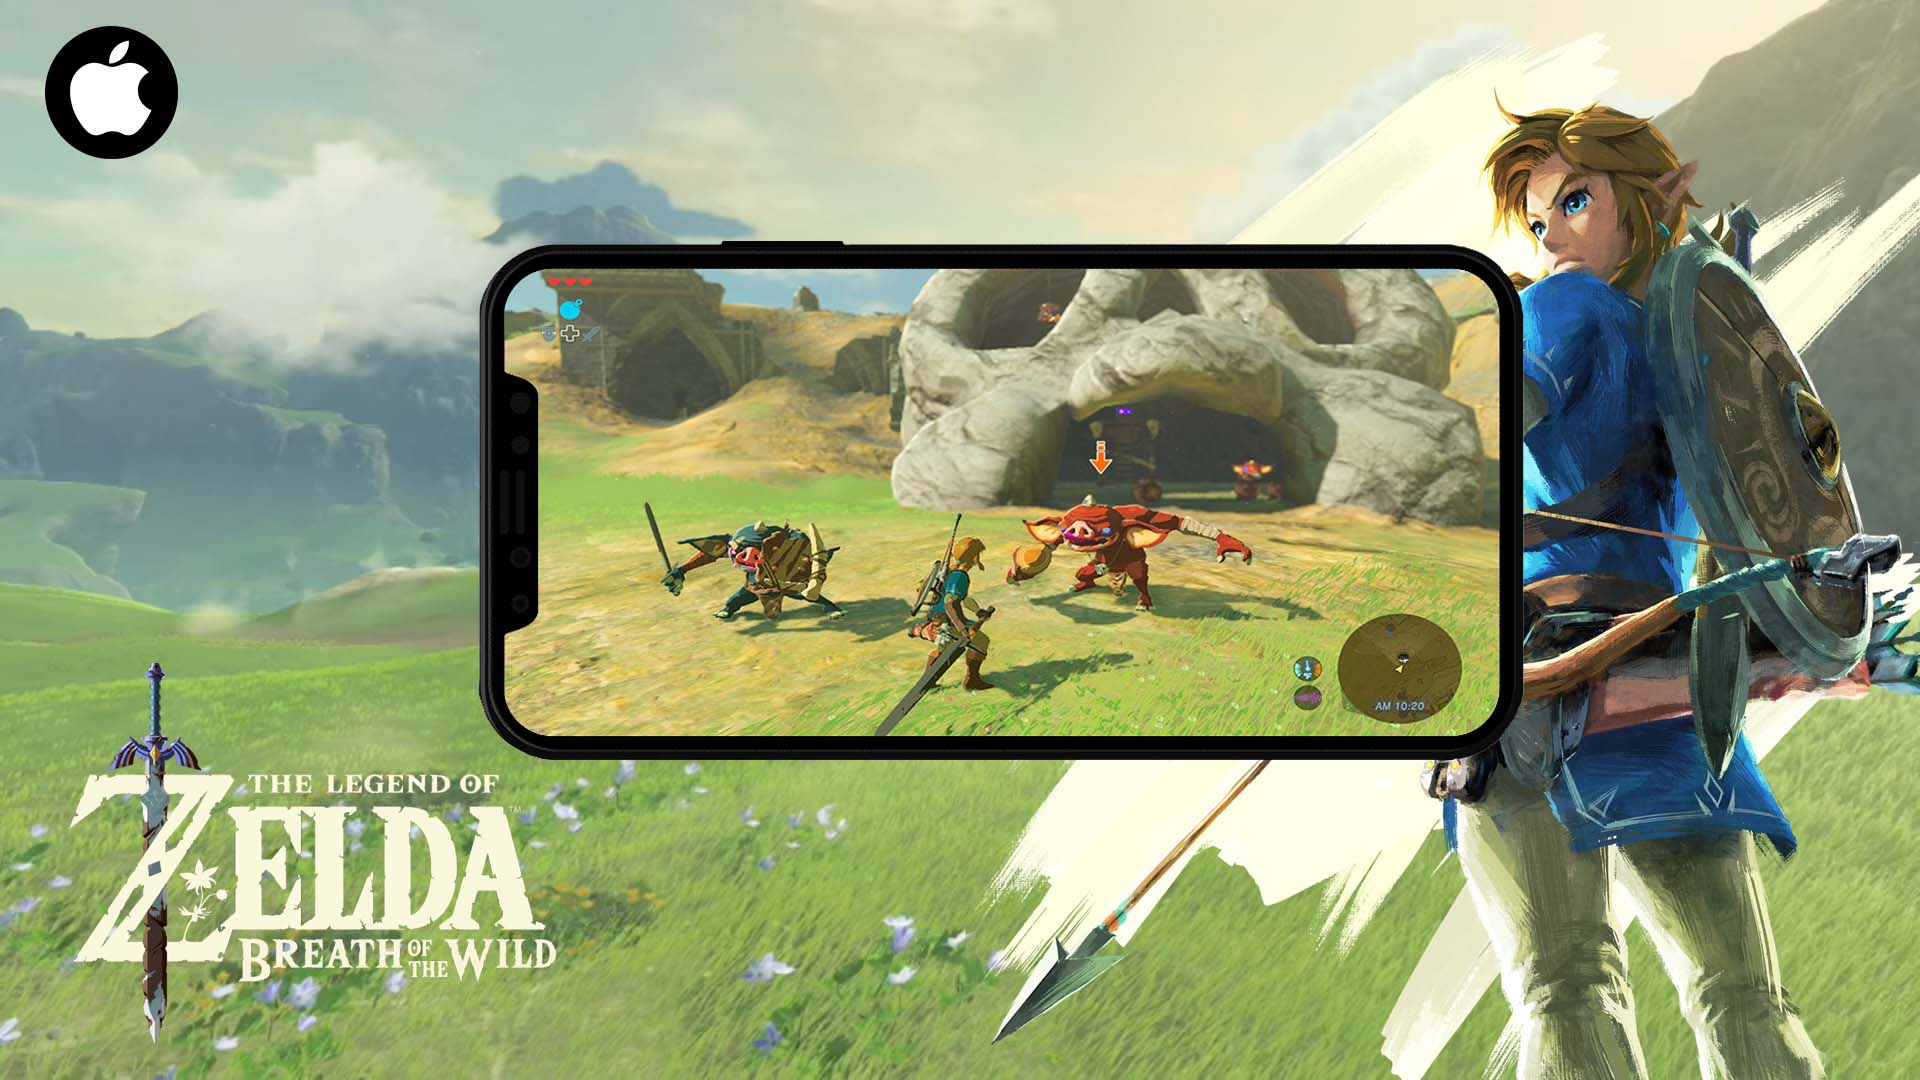 The Legend of Zelda: Breath of the Wild 2 iOS